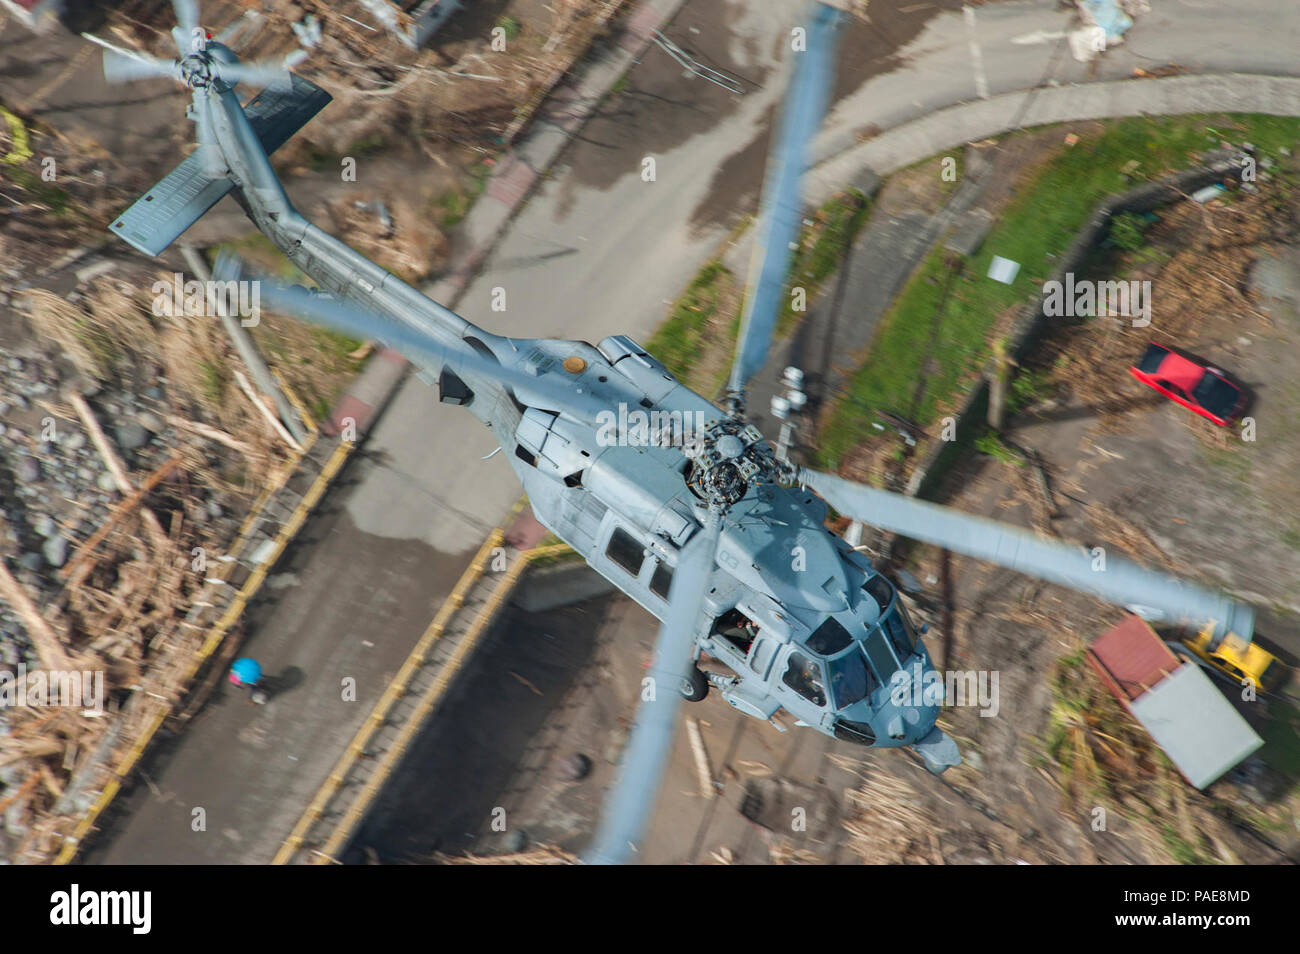 DOMINICA (Sept. 25, 2017) An MH-60S Sea Hawk helicopter  flies over the island of Dominica during U.S. citizen evacuations and humanitarian relief following the landfall of Hurricane Maria. The Department of Defense is supporting the United States Agency for International Development (USAID), the lead federal agency, in helping those affected by Hurricane Maria to minimize suffering and is one component of the overall whole-of-government response effort. - Stock Image